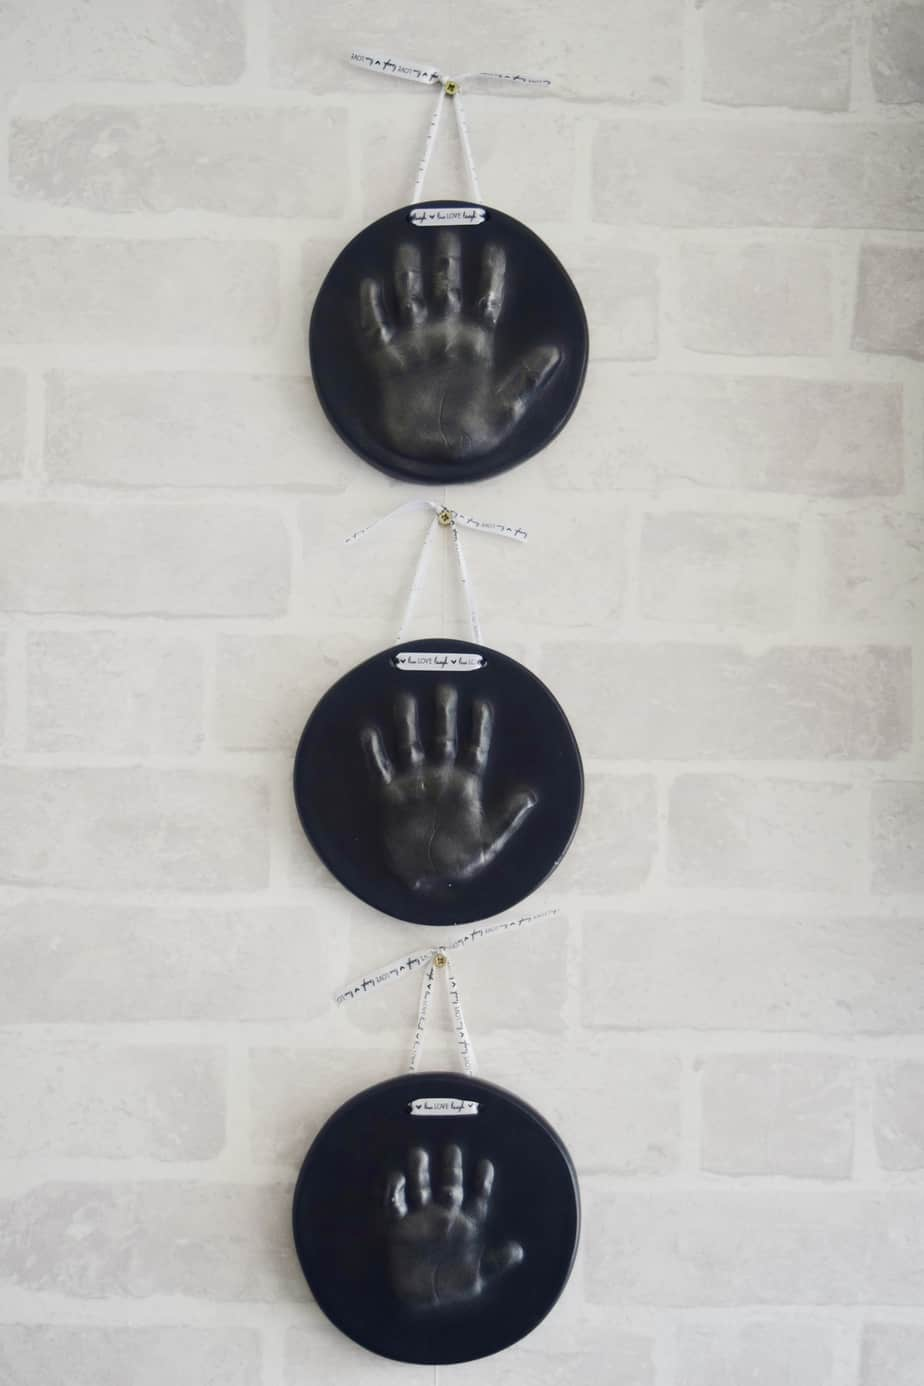 My three children's imprints hanging on the wall in a vertical line made by Blossom Keepsakes